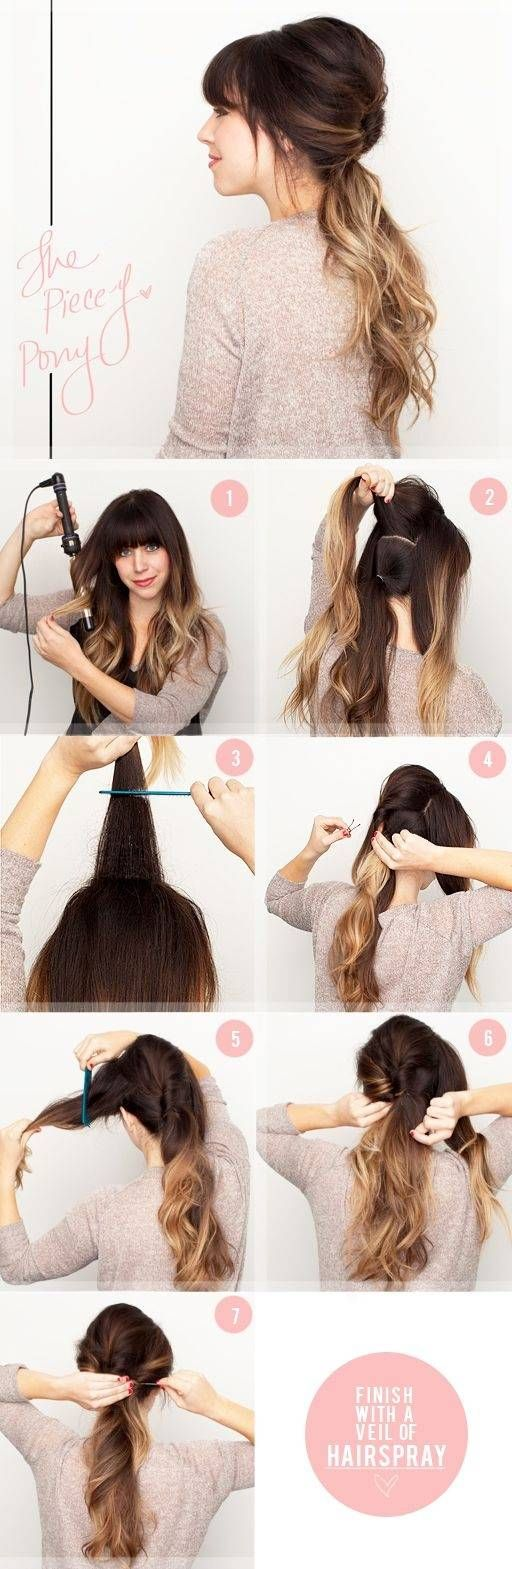 I want that girls exact hair! Color, cut, length,bangs, style !!! I love it!